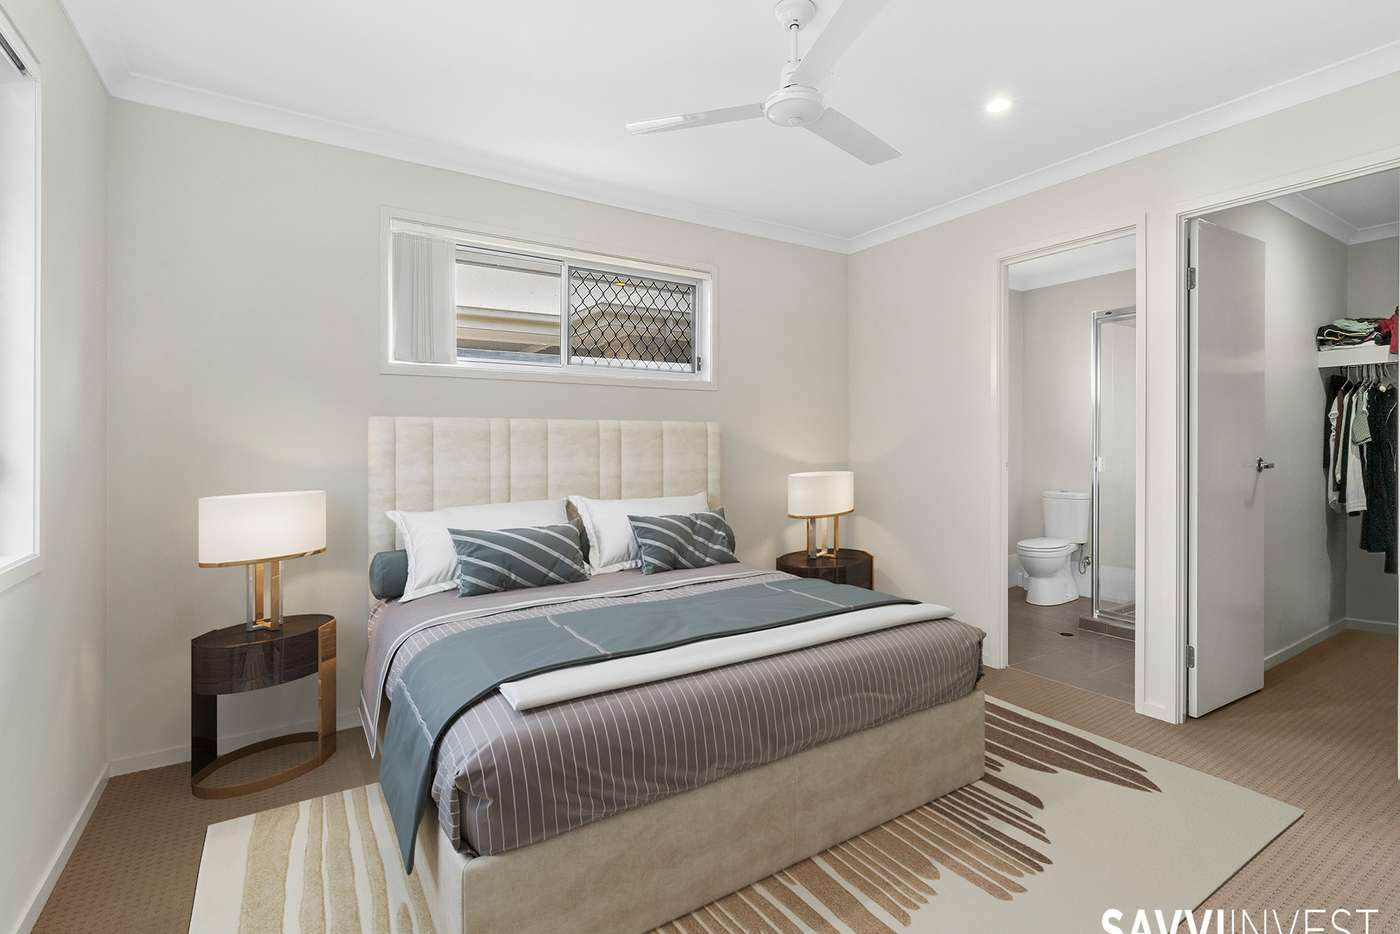 Sixth view of Homely house listing, 18 Oakover Avenue, Ormeau Hills QLD 4208